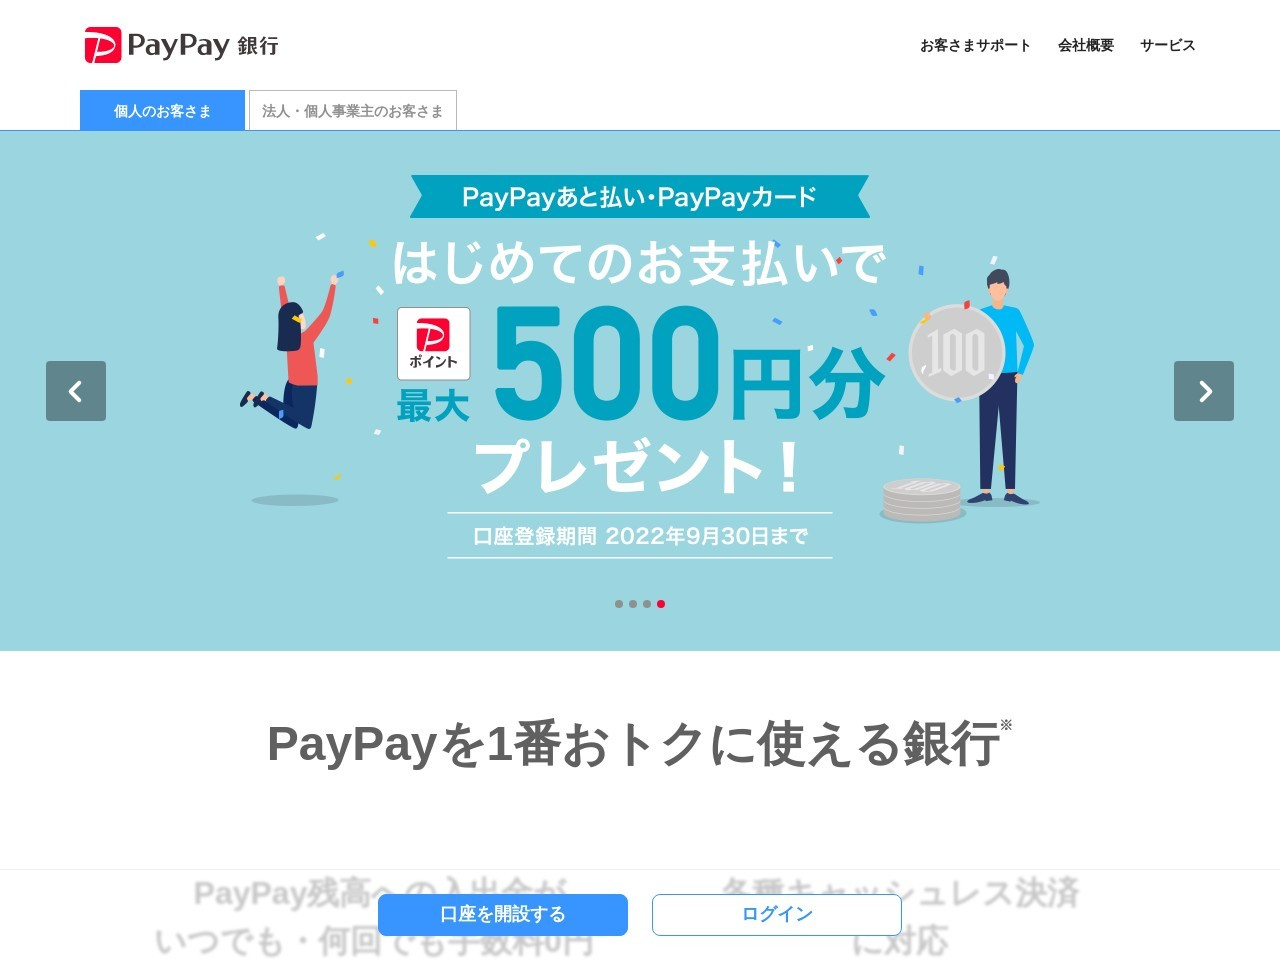 http://www.japannetbank.co.jp/service/payment/cardless/